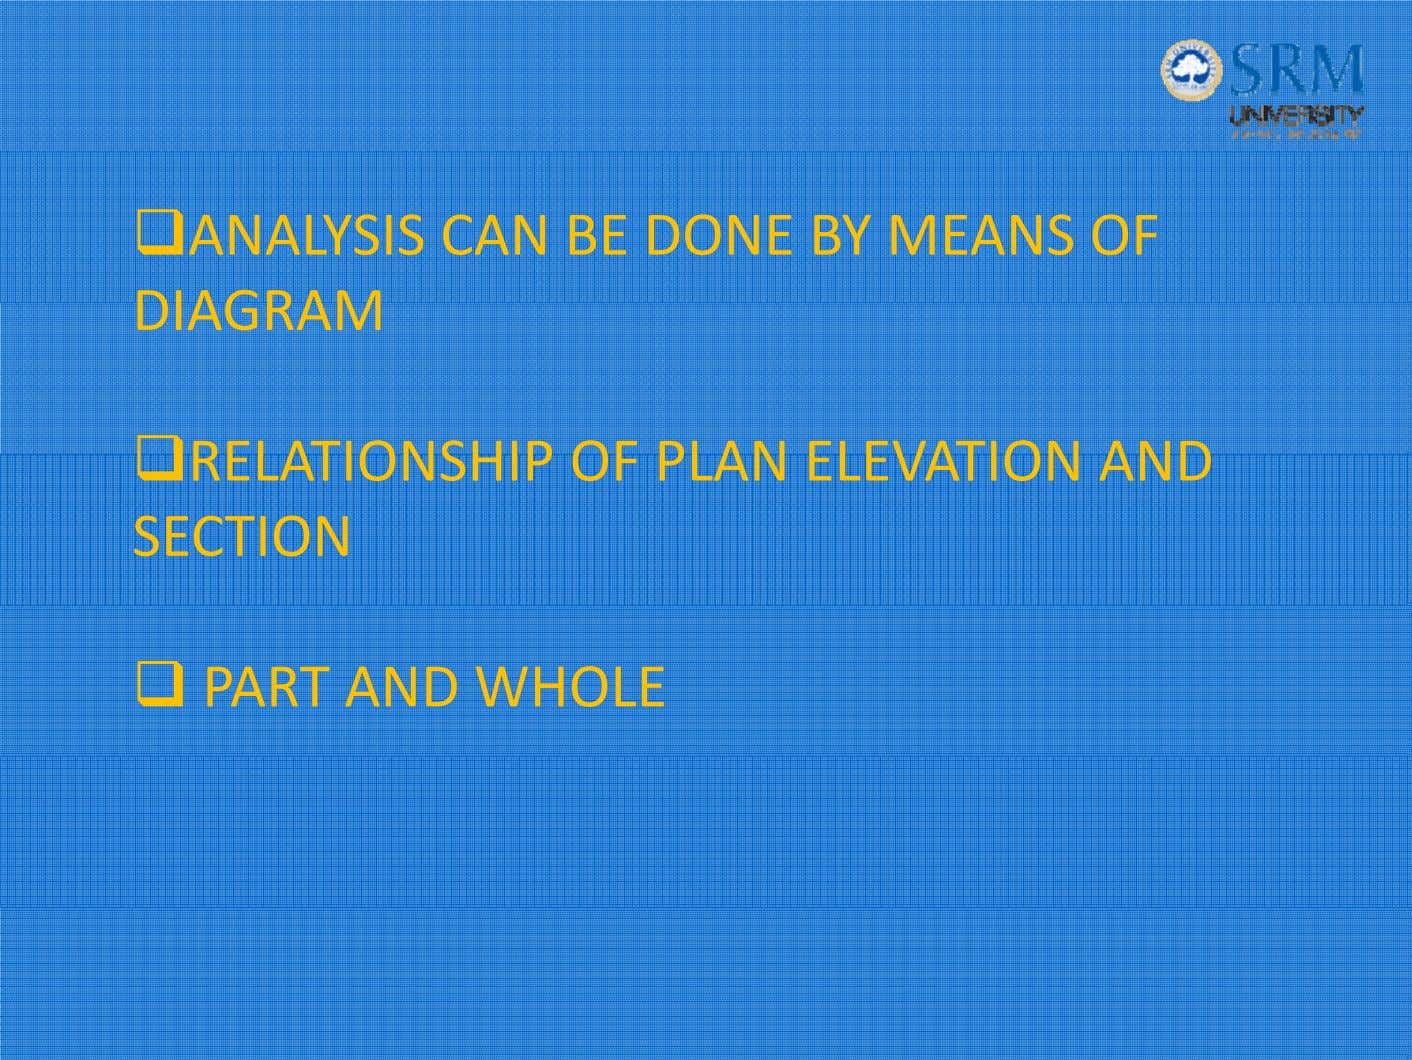 ANALYSIS CAN BE DONE BY MEANS OF DIAGRAM RELATIONSHIP OF PLAN ELEVATION AND SECTION PART